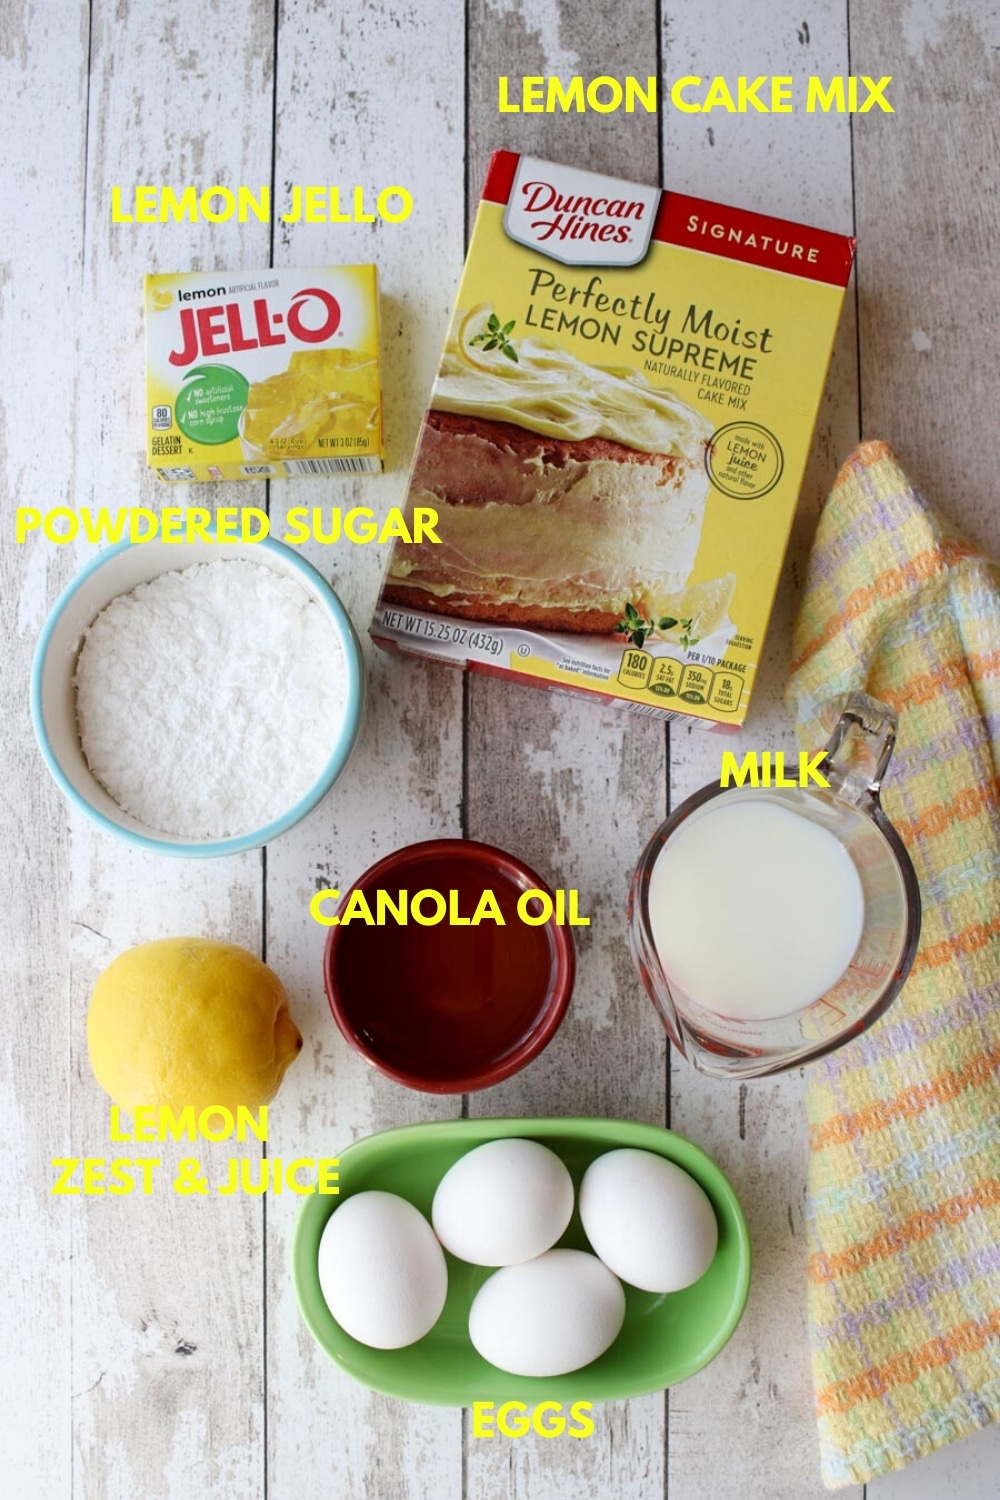 Photo showing all of the lemon bundt cake ingredients